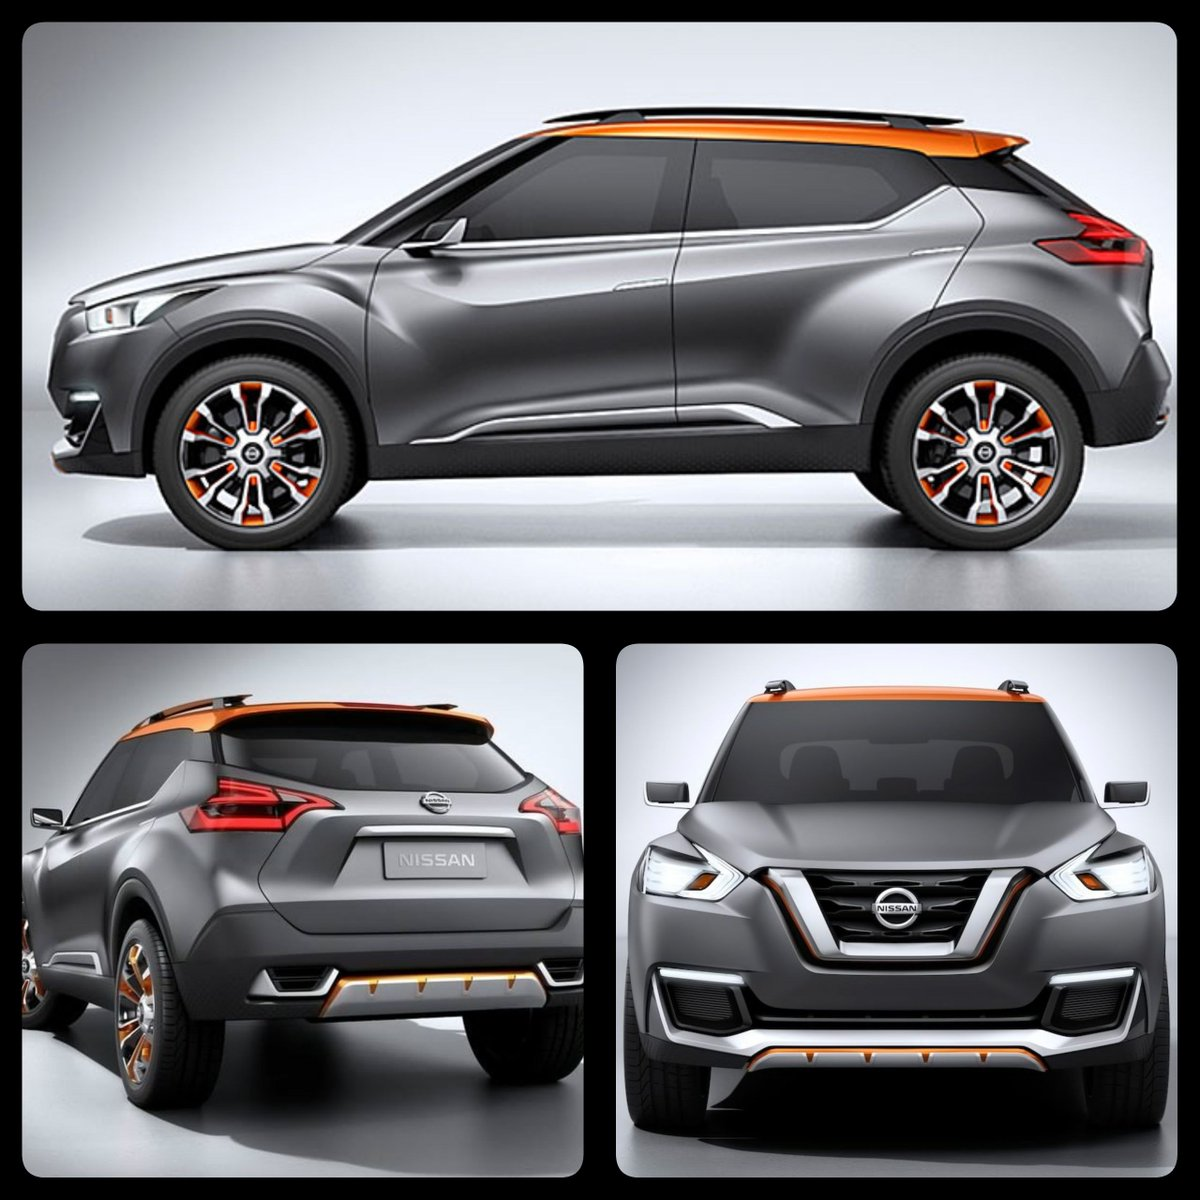 Nik J Miles On Twitter Nissan India Planning Subcompact Suv 2018 Kicks With 30k Units For Domestic Plans To Export 20k 1st Year Of